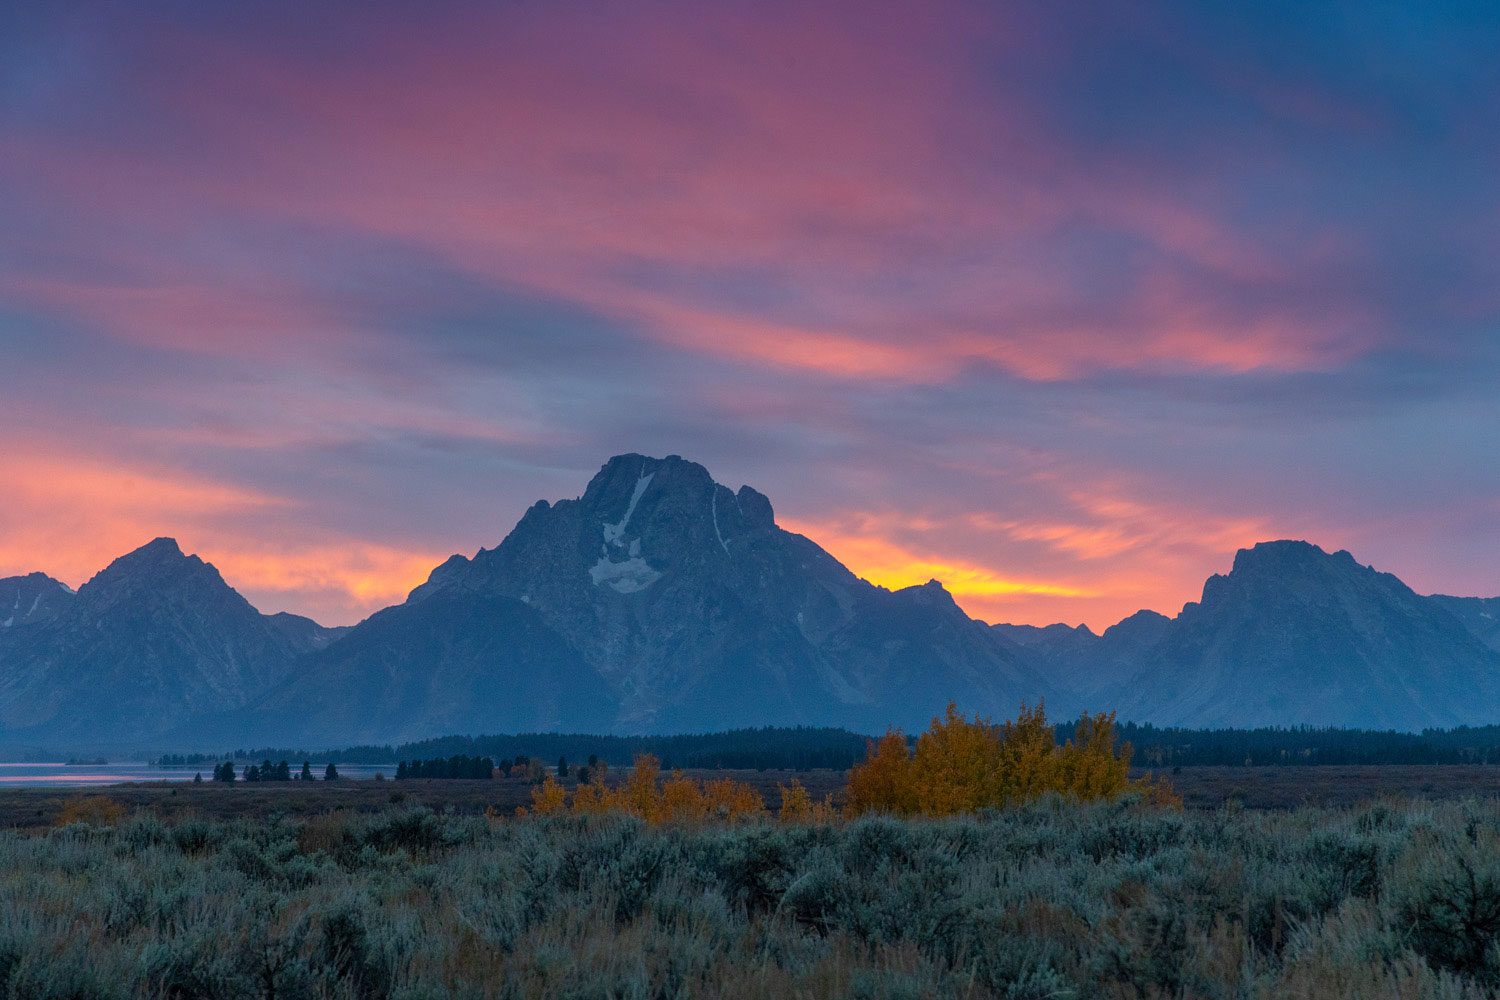 grand teton, fall, autumn, landscape, photo, image, Tetons, photo